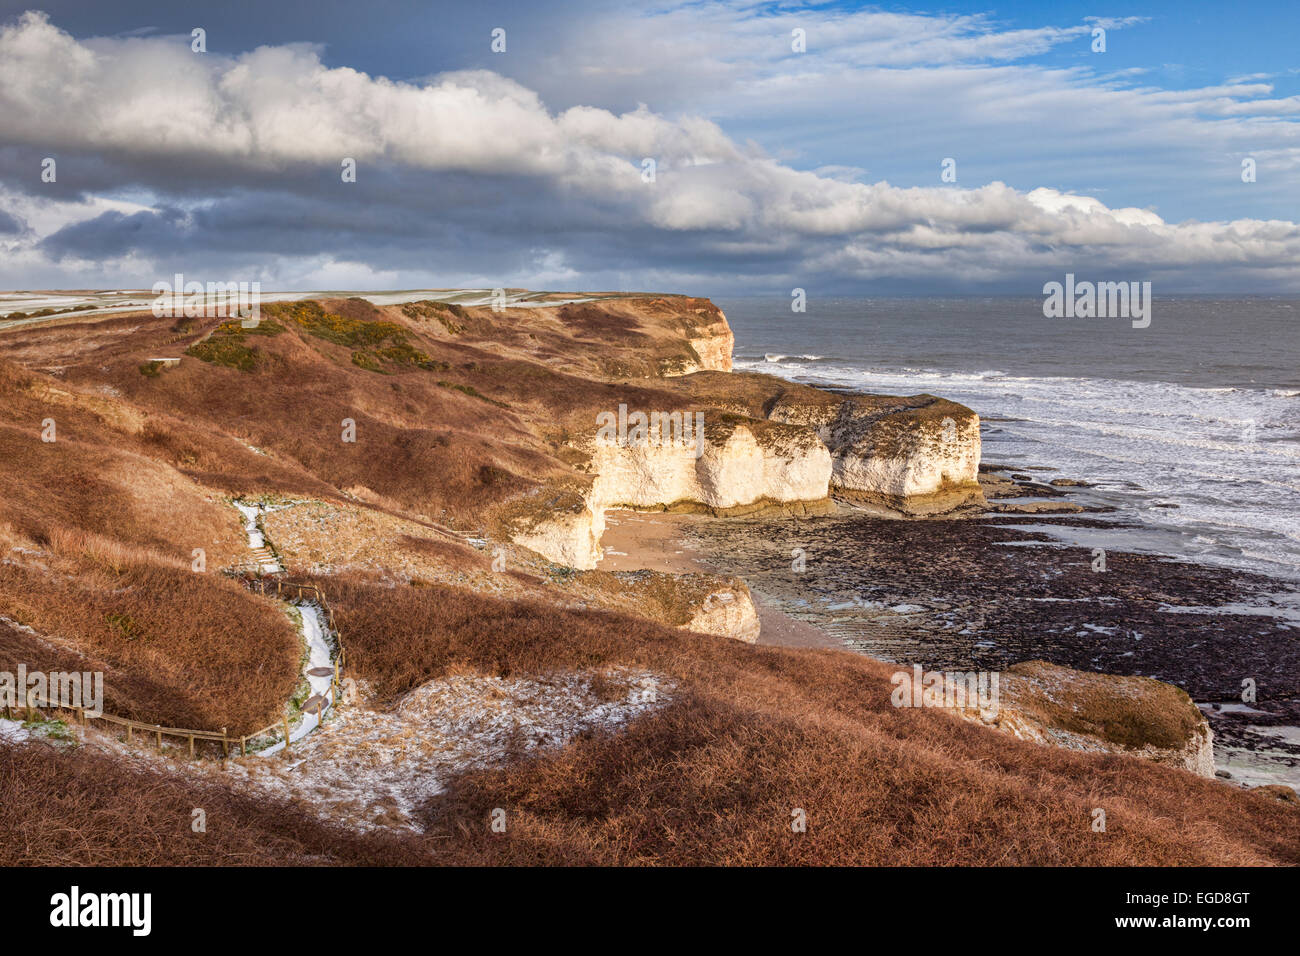 Flamborough Head, East Yorkshire, Inglaterra (Reino Unido), los acantilados de piedra caliza en Flamborough Head, Imagen De Stock